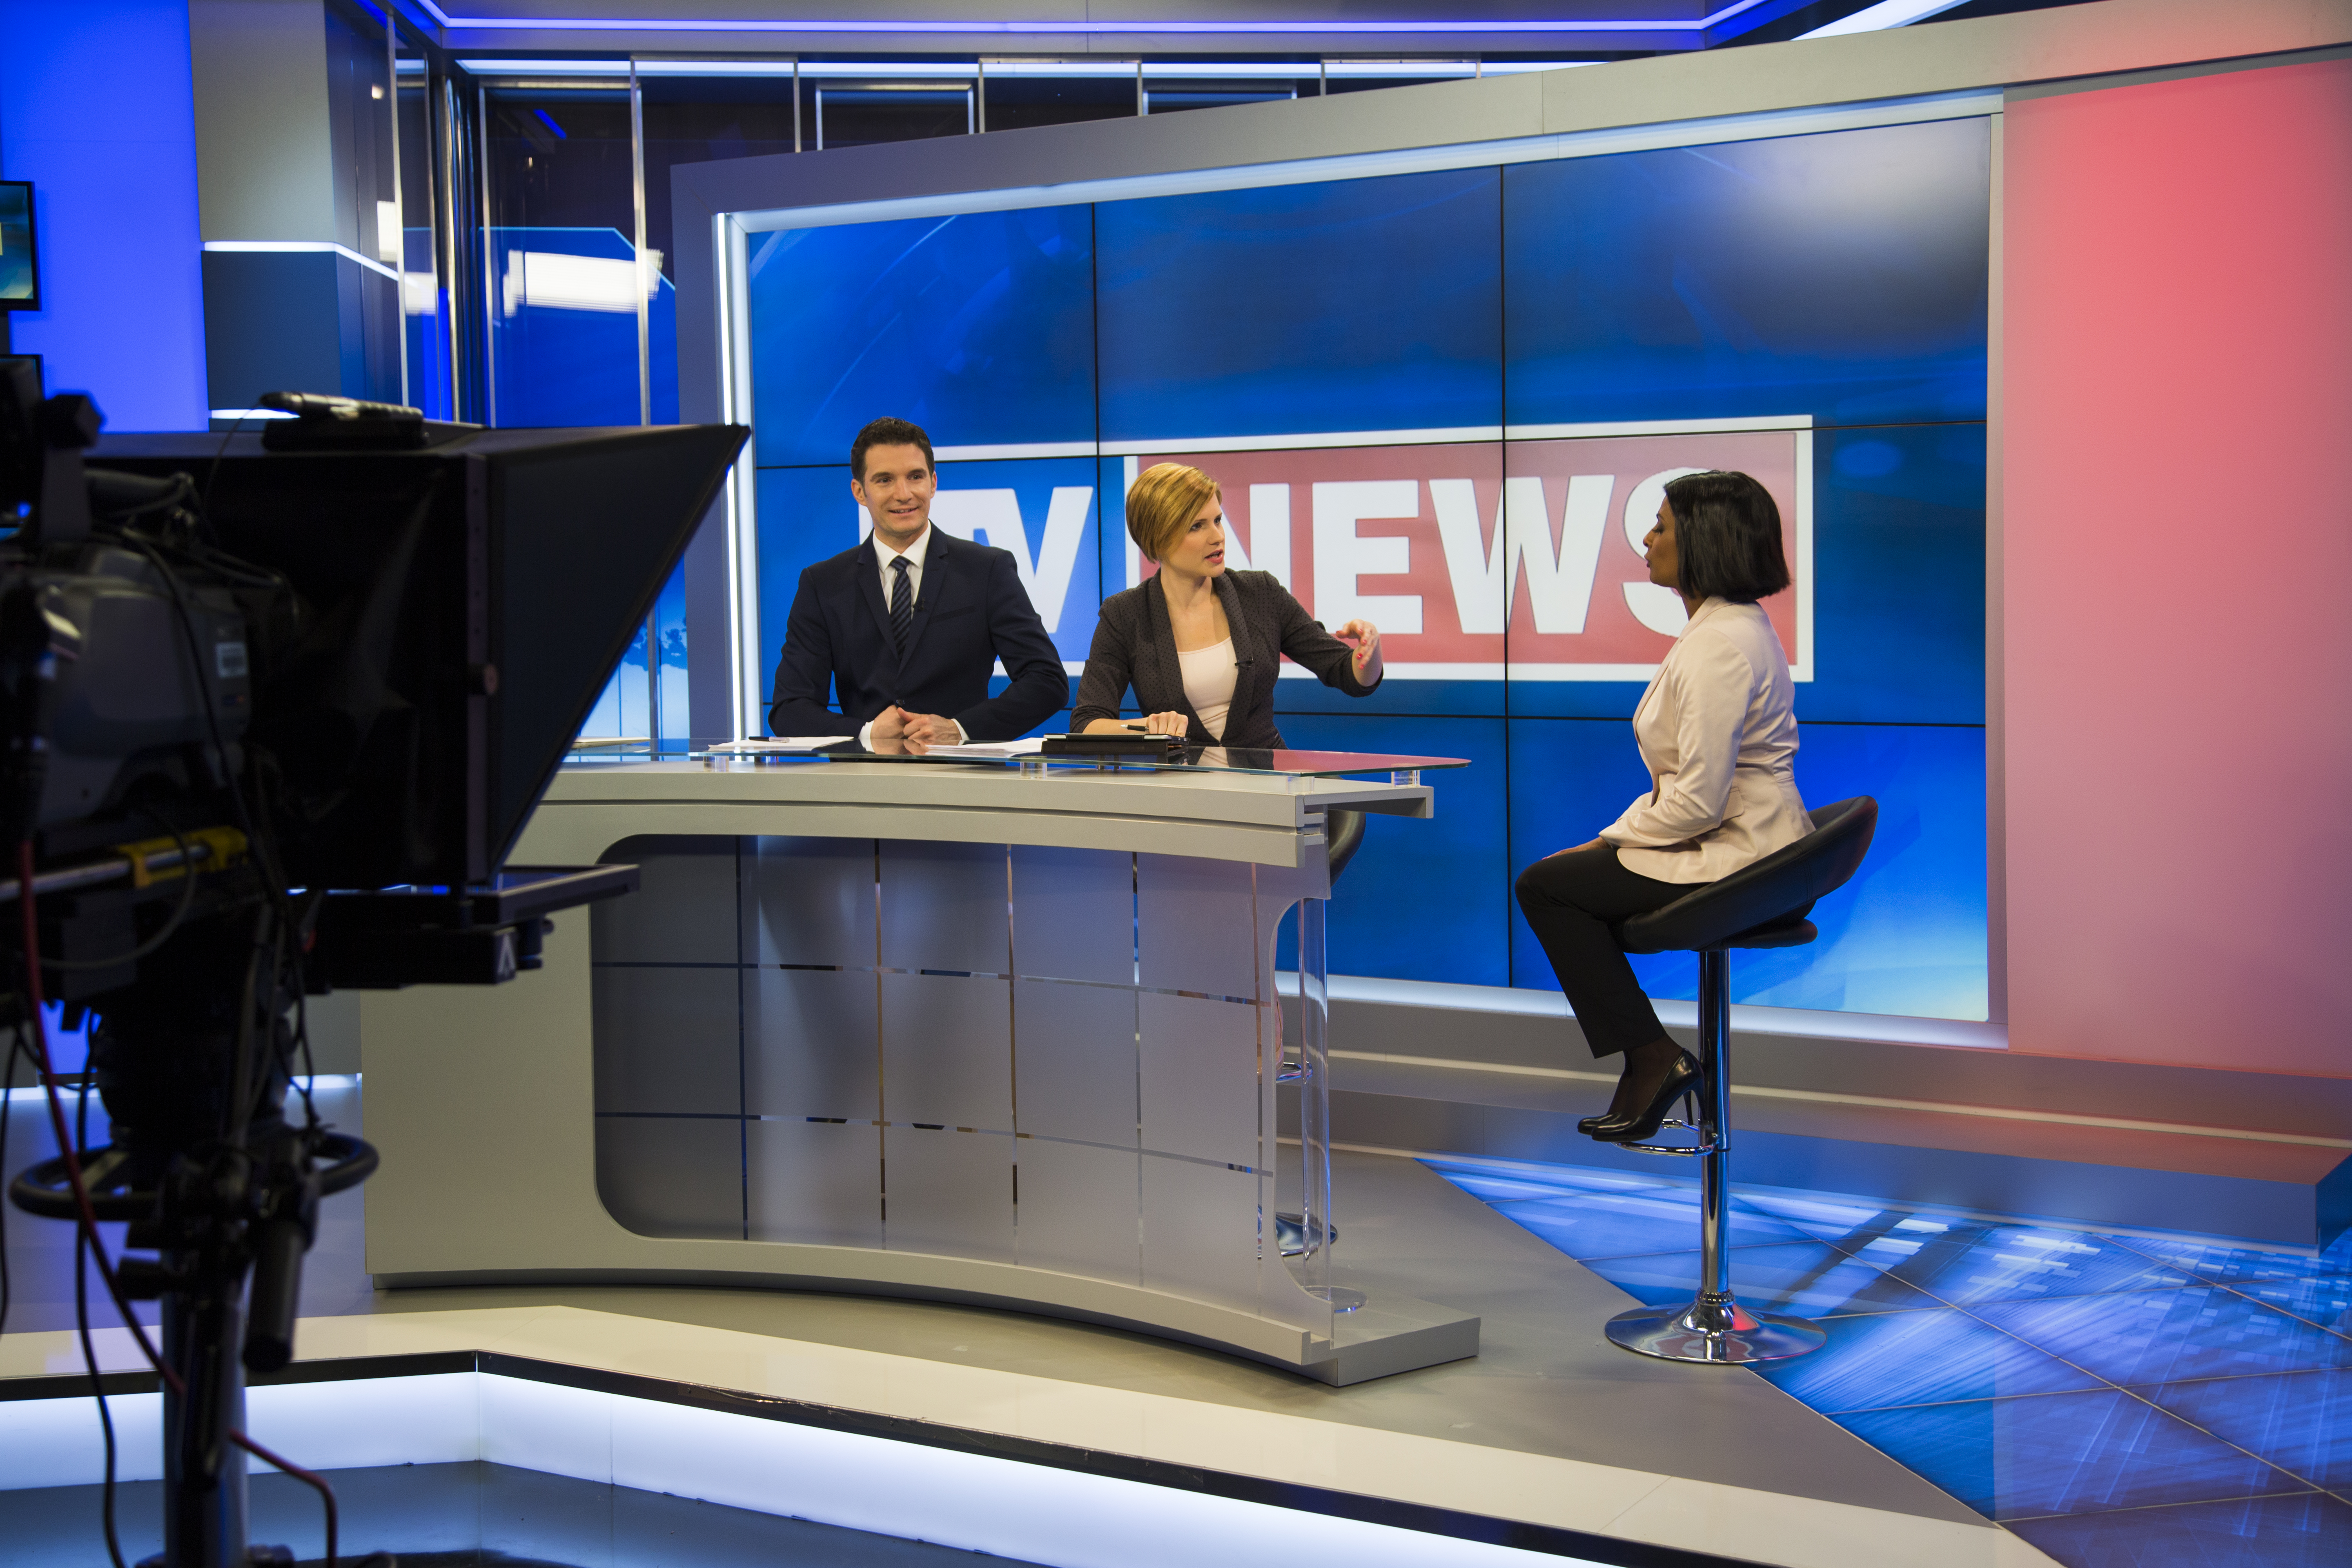 Two commentators preparing for a live interview on the news. Three people in a tv studio talking about the script for the news show.